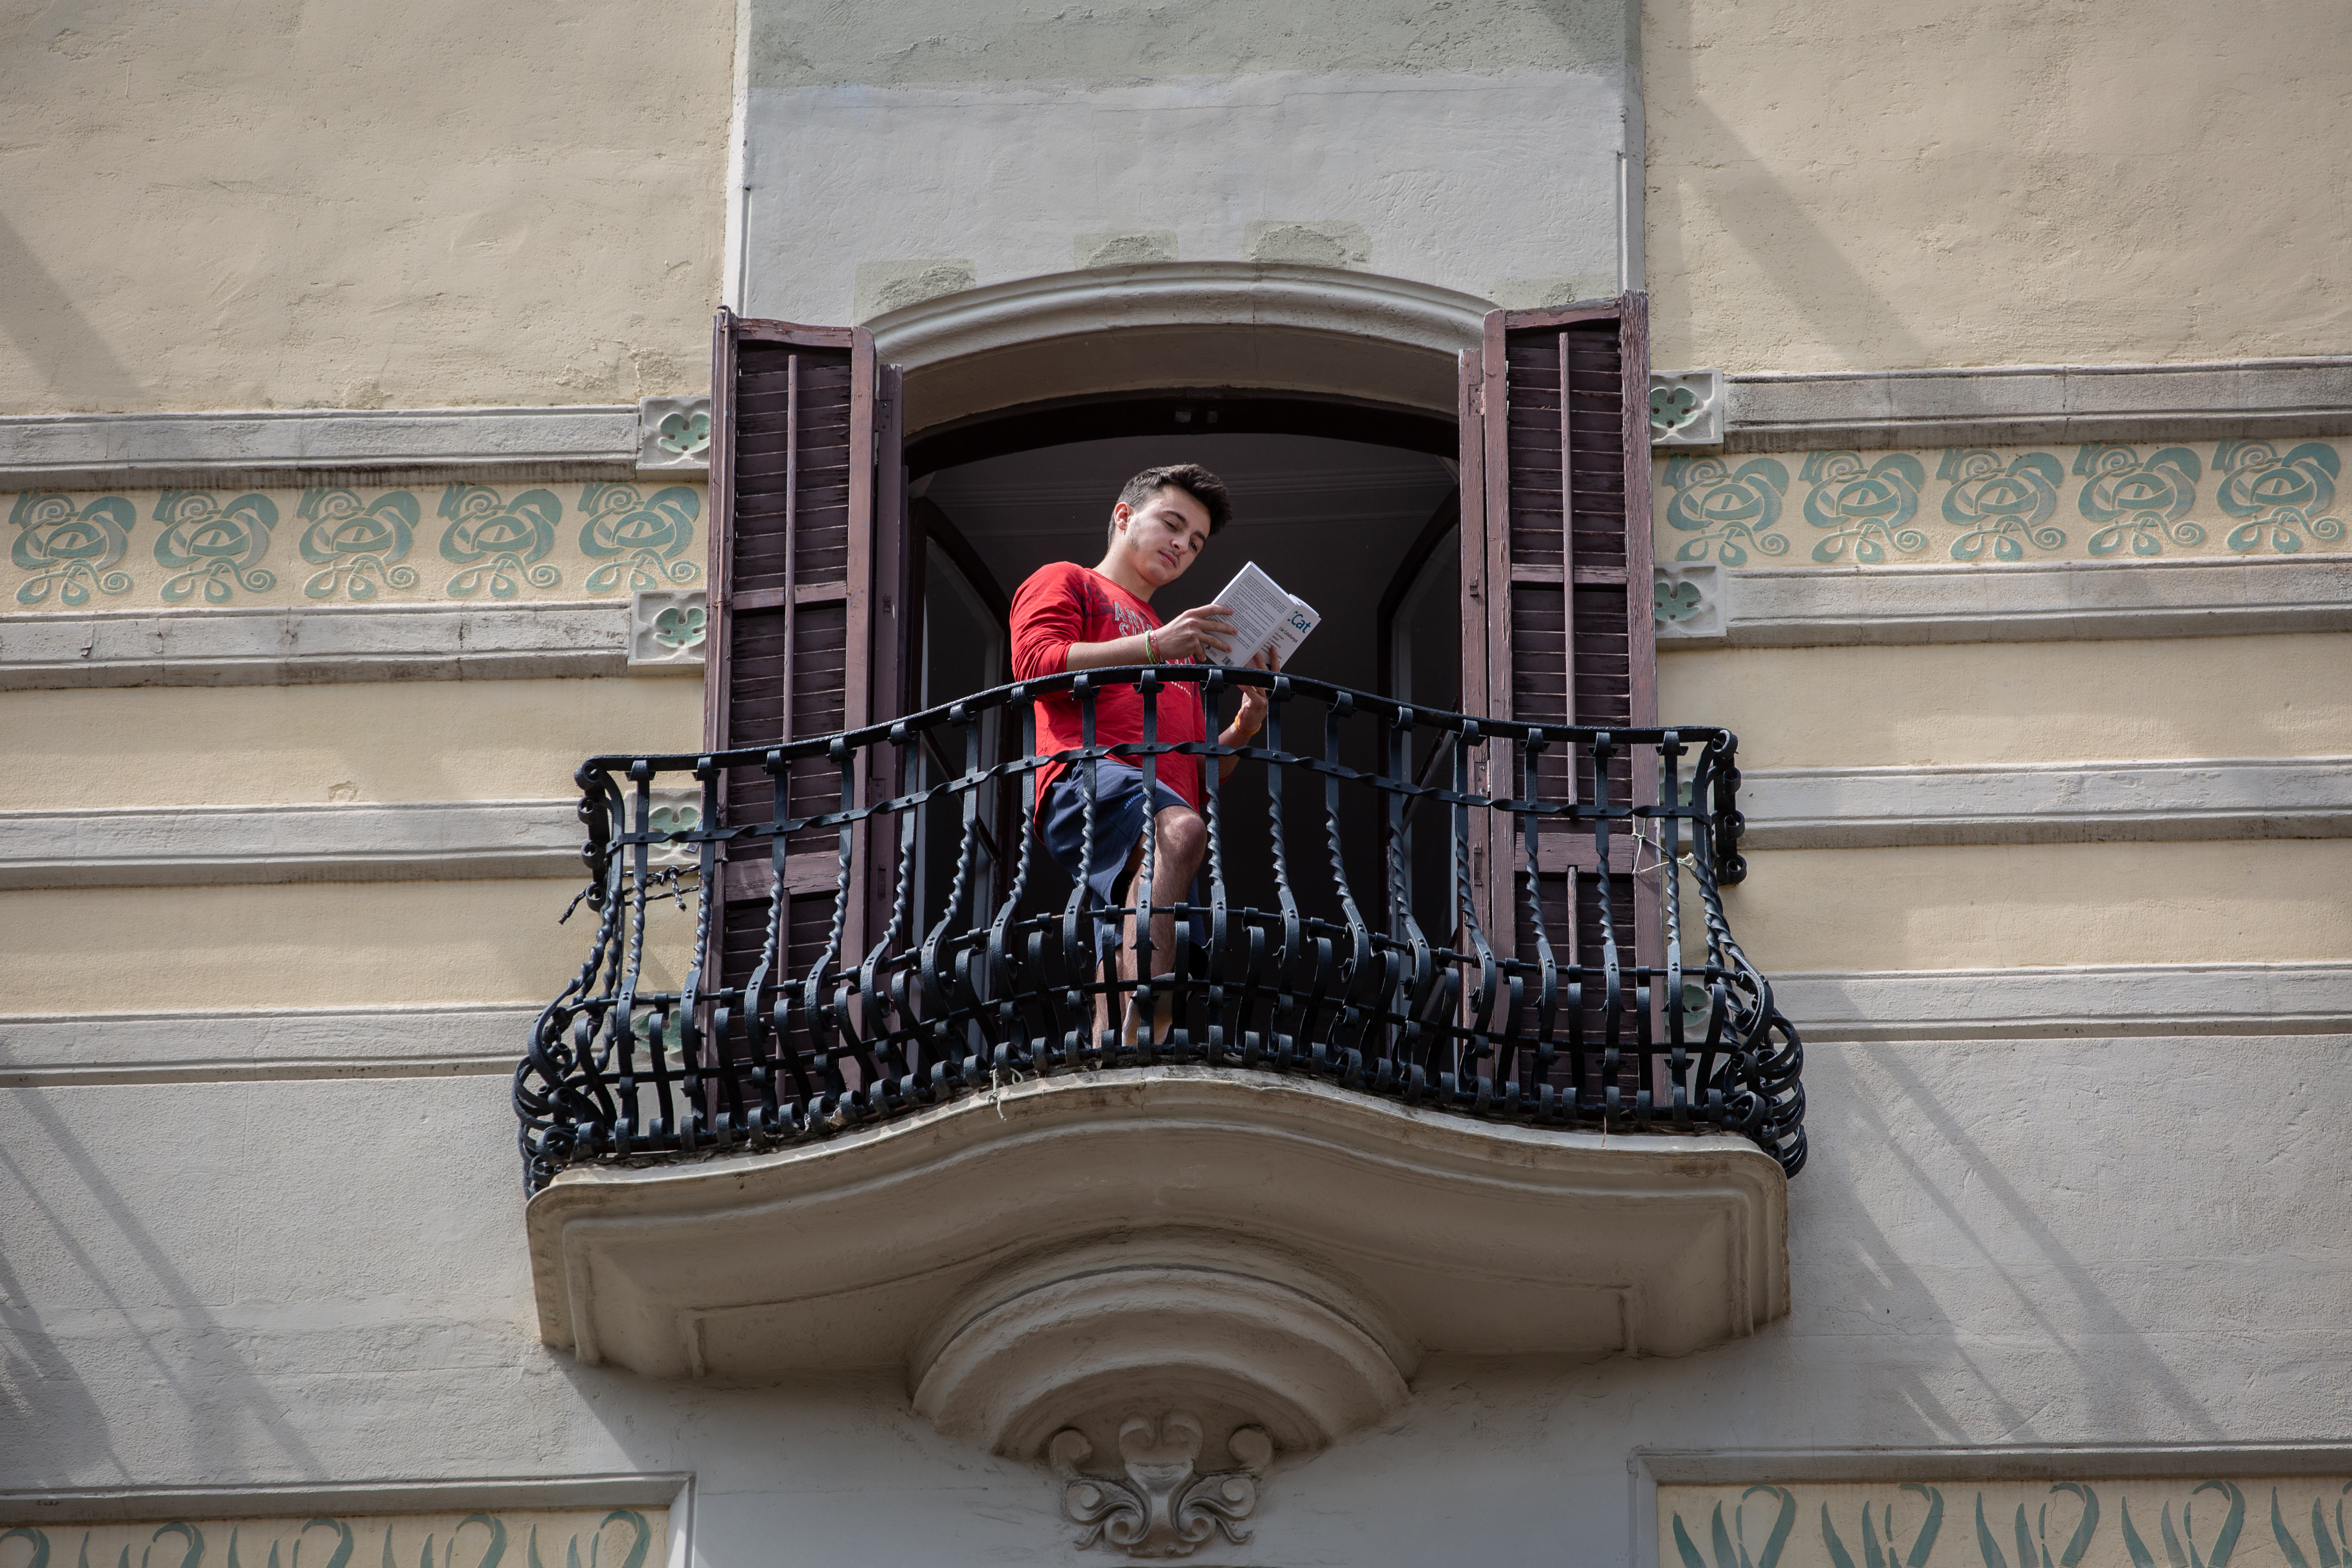 A young man reads a book on the balcony of his house on the occasion of Sant Jordi Day, when it is usual to offer books and roses on April 23, 2020 in Barcelona, Spain.